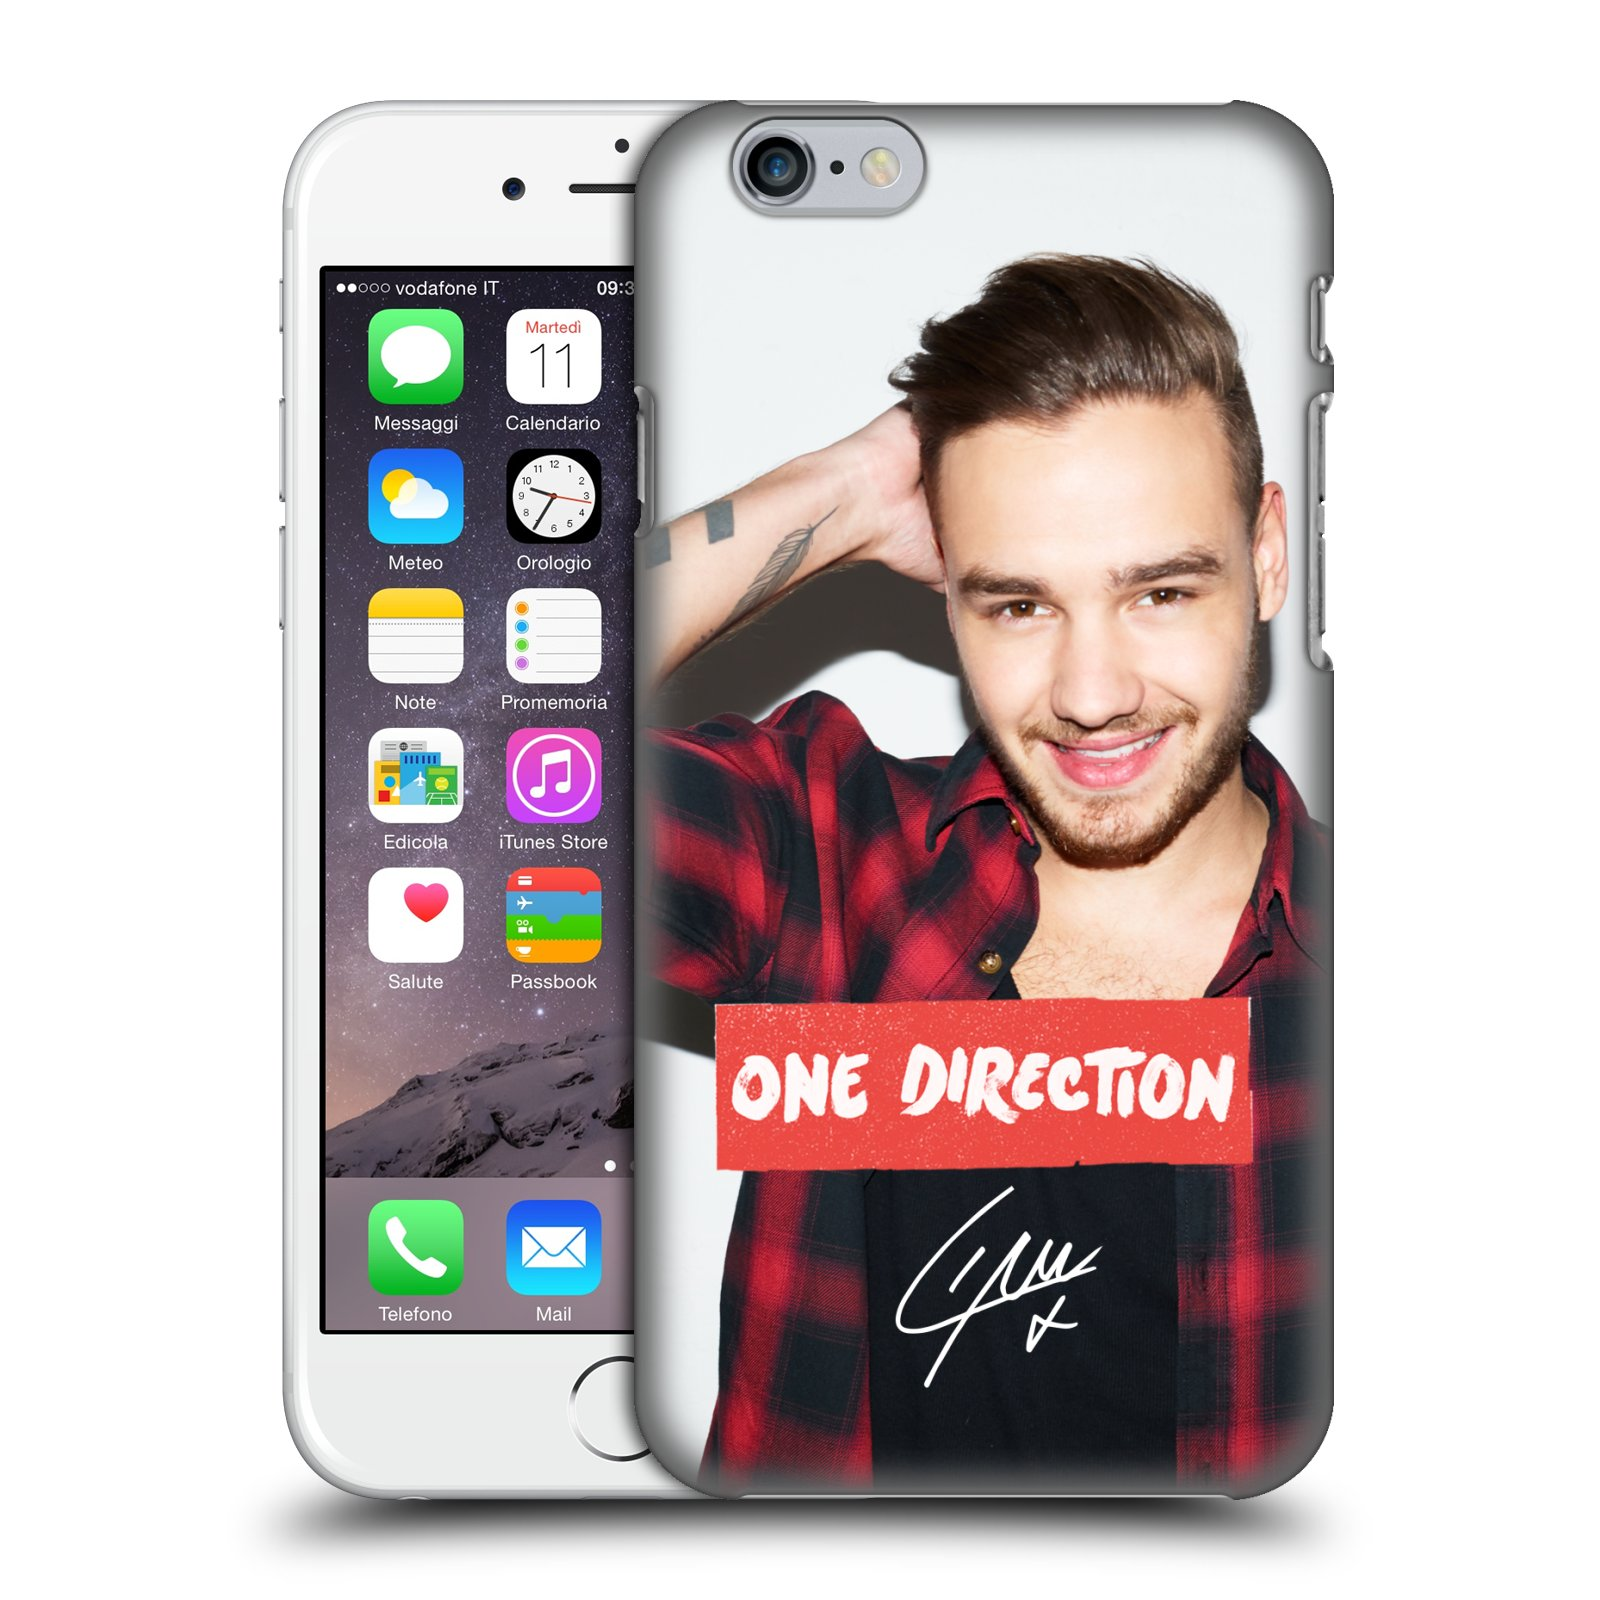 Du00e9tails sur Officiel One Direction 1D LIAM PAYNE Photo Coque arriu00e8re ...